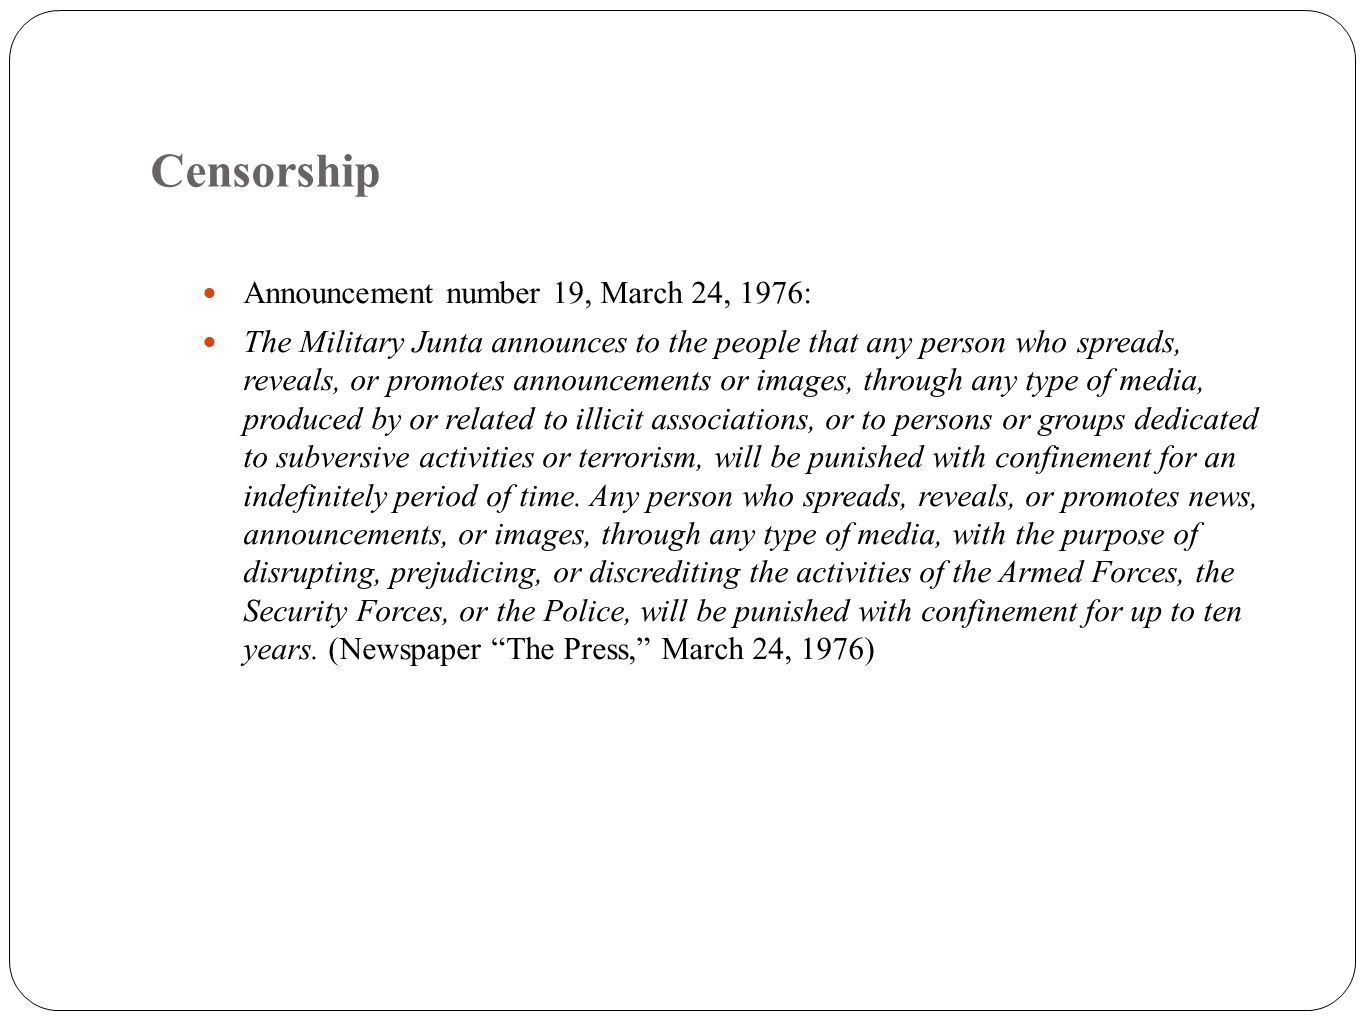 Censorship Announcement number 19, March 24, 1976: The Military Junta announces to the people that any person who spreads, reveals, or promotes announ